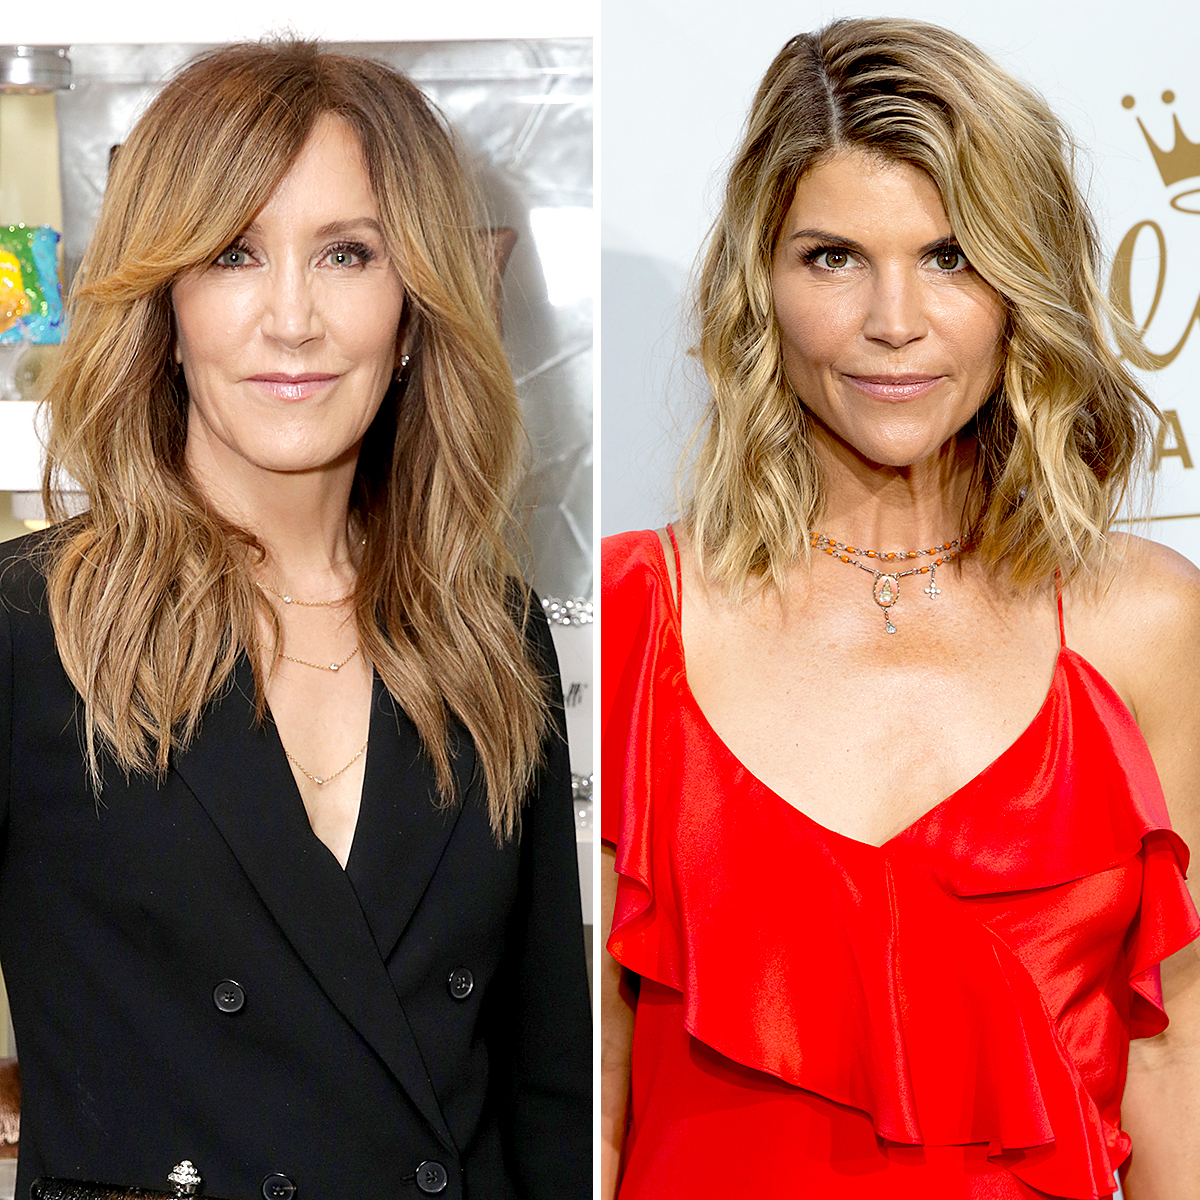 Felicity-Huffman-Arrested,-Warrant-Issued-for-Lori-Loughlin-Following-College-Scam